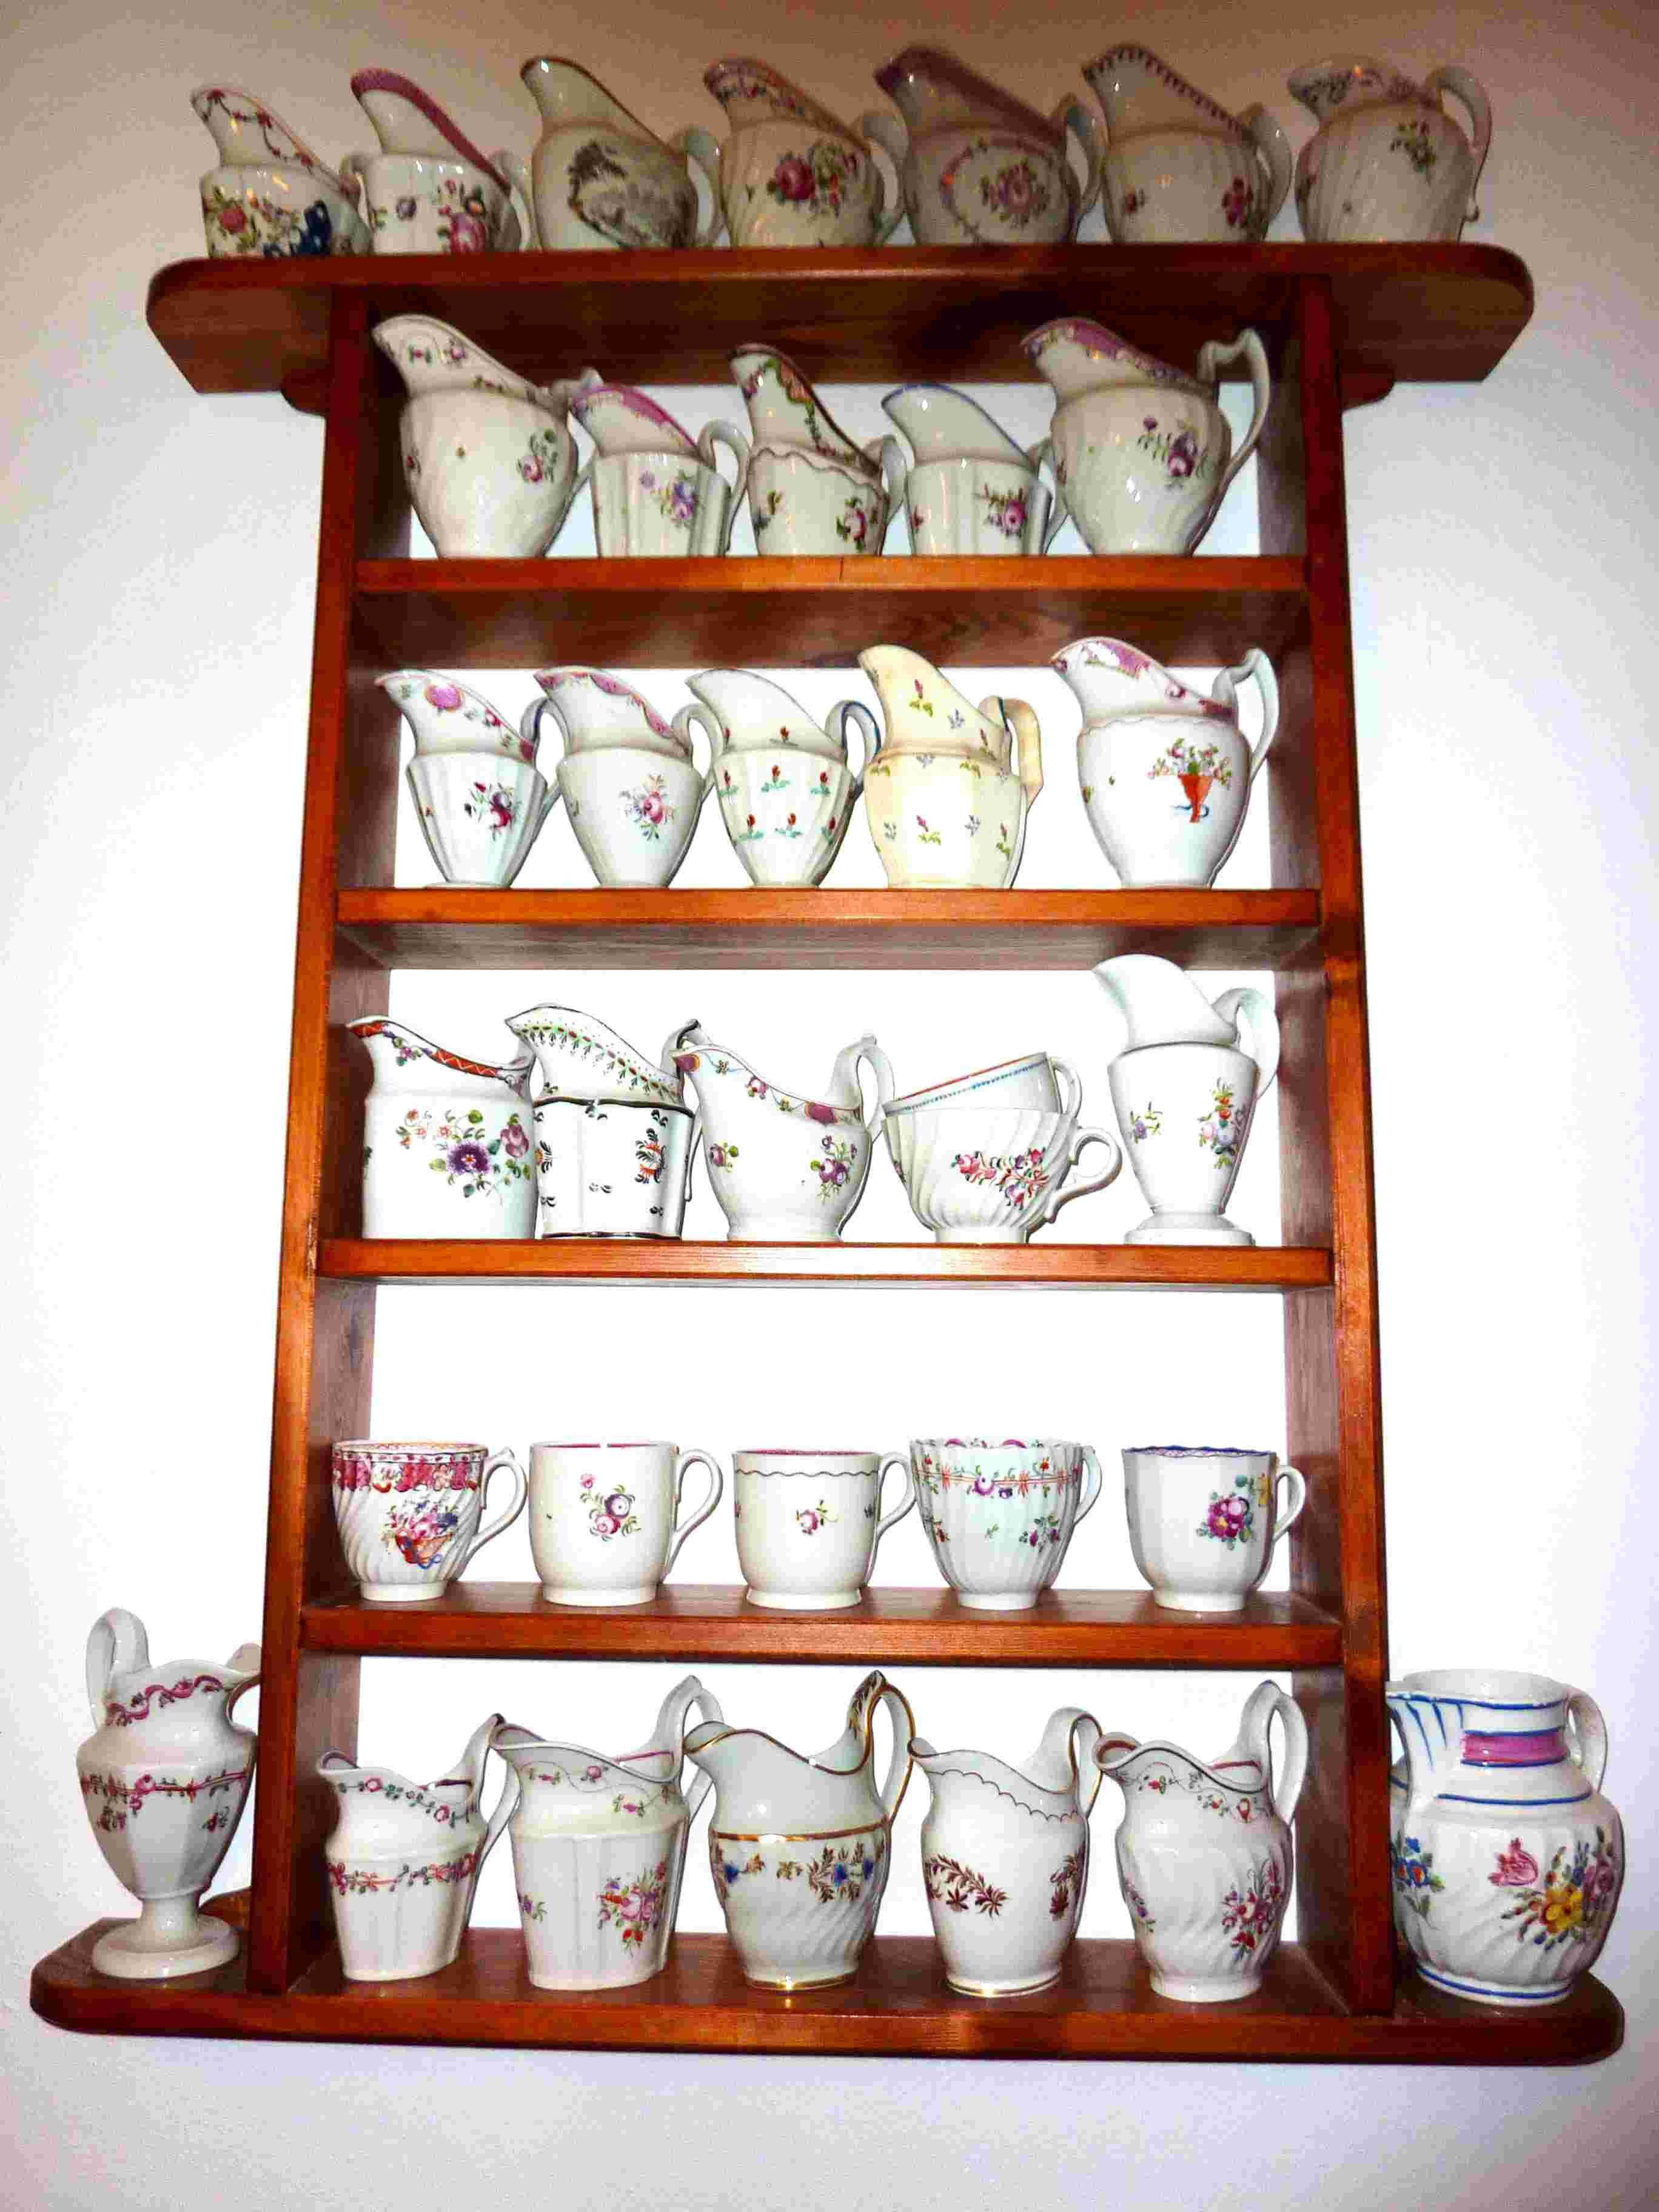 Part of the collection of milk jugs